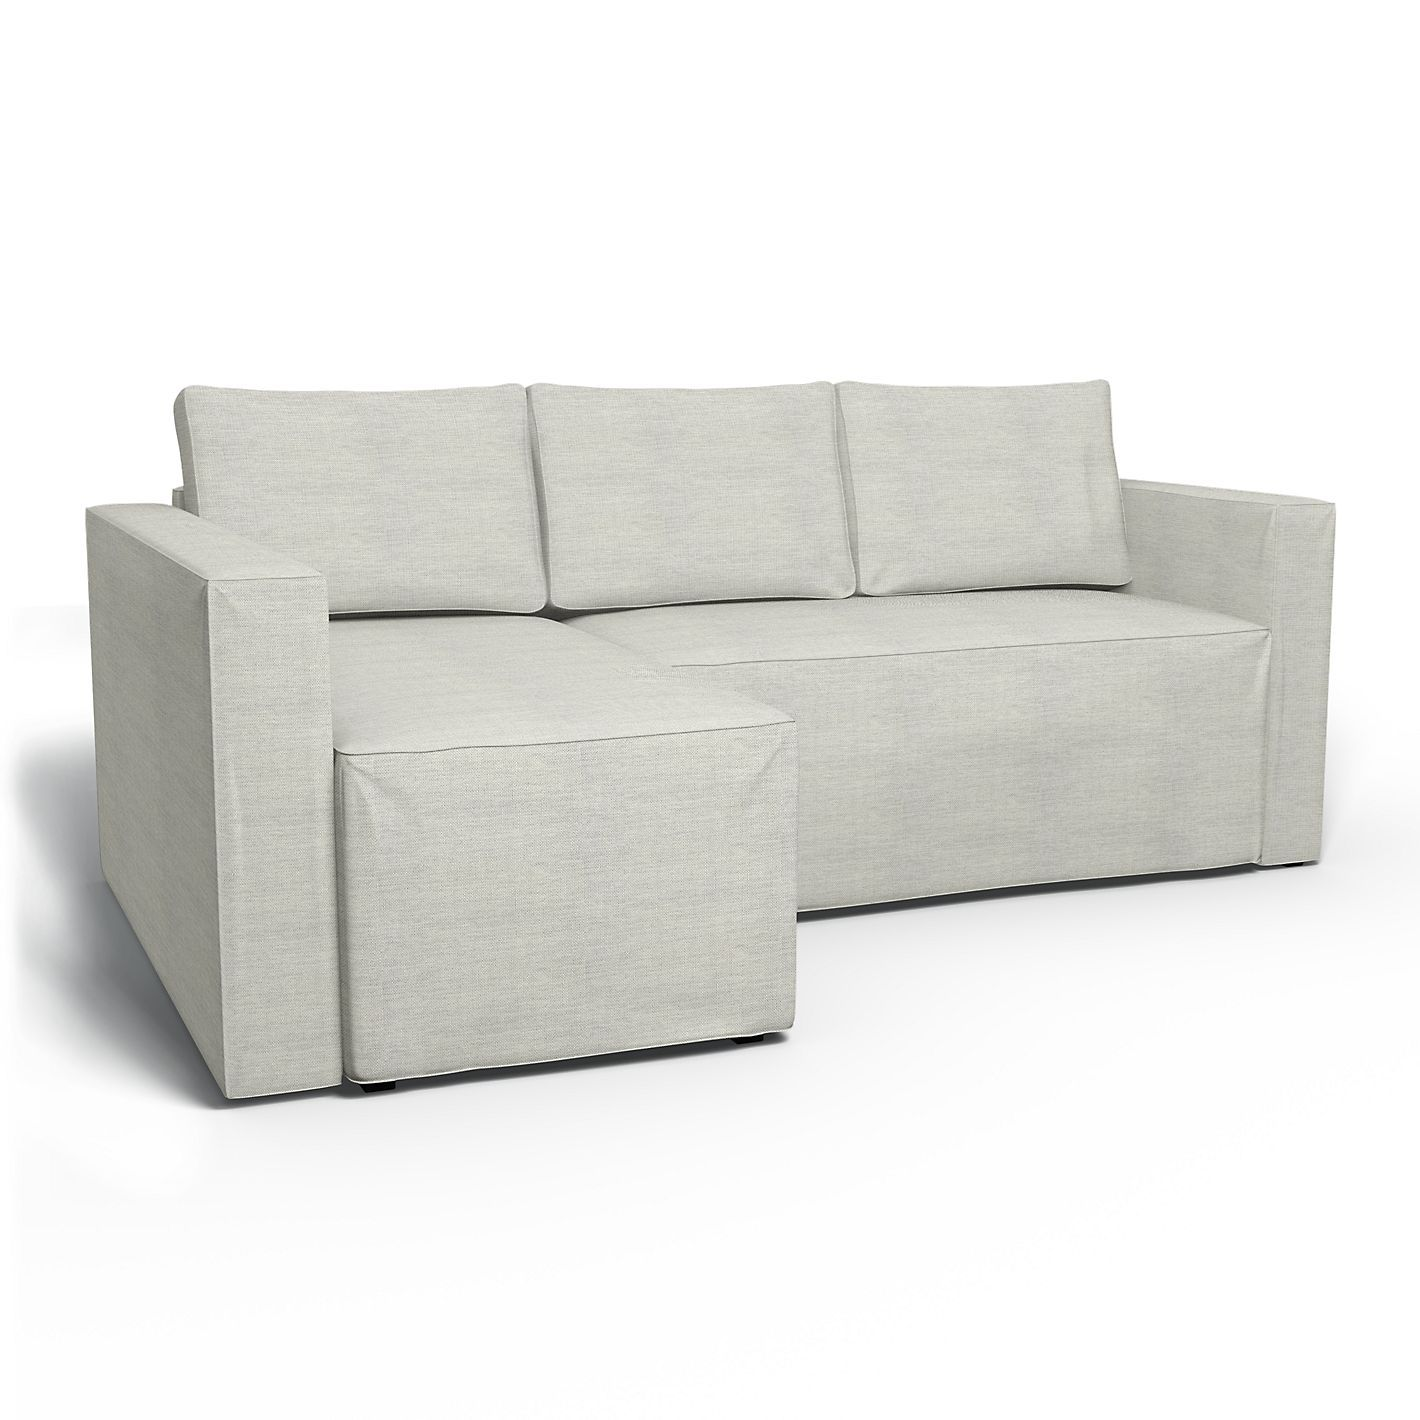 M¥nstad Corner sofa bed with storage left